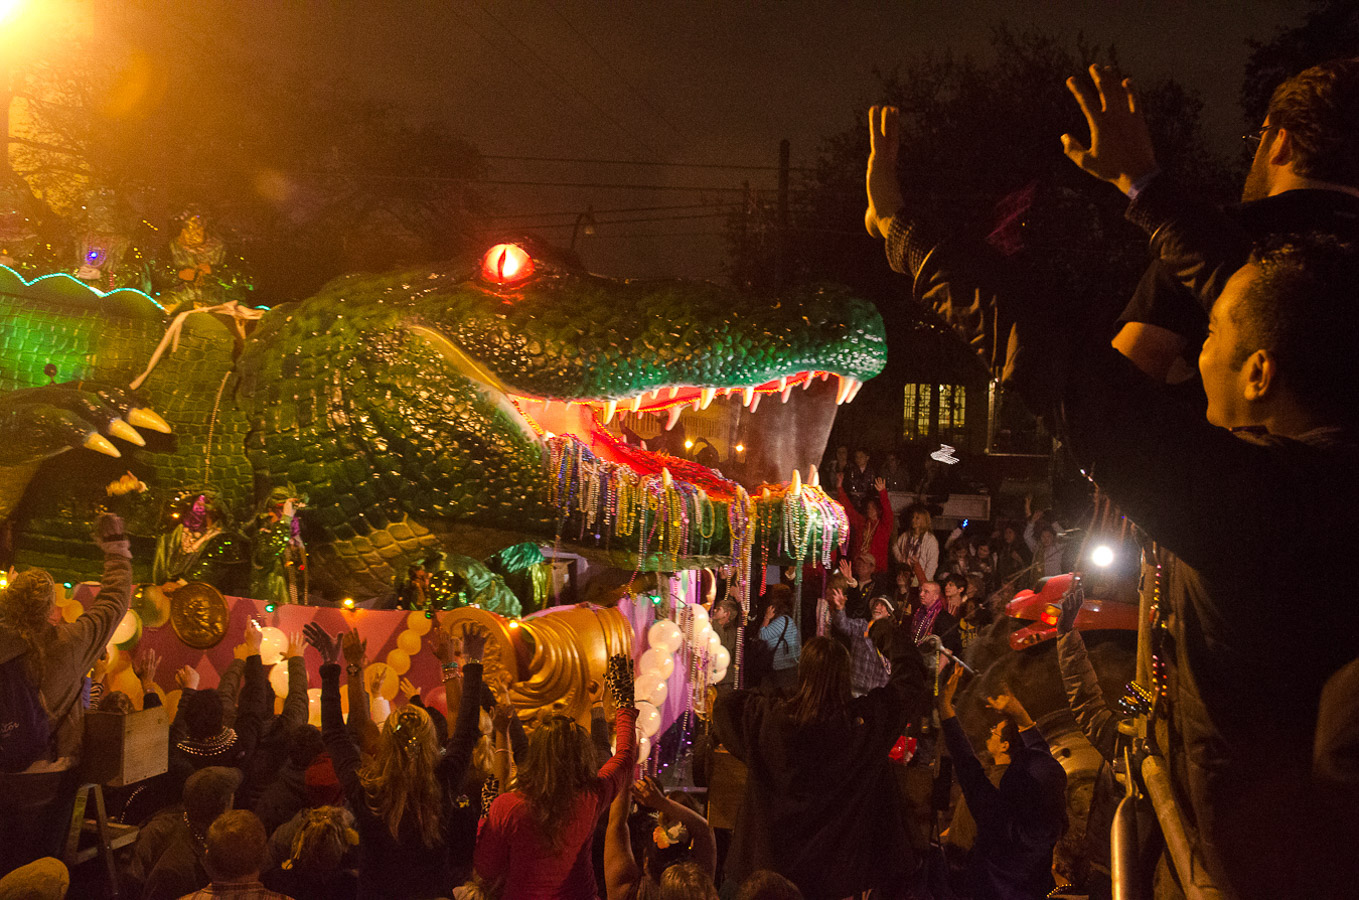 Bacchus Parade, New Orleans Mardi Gras, 2012